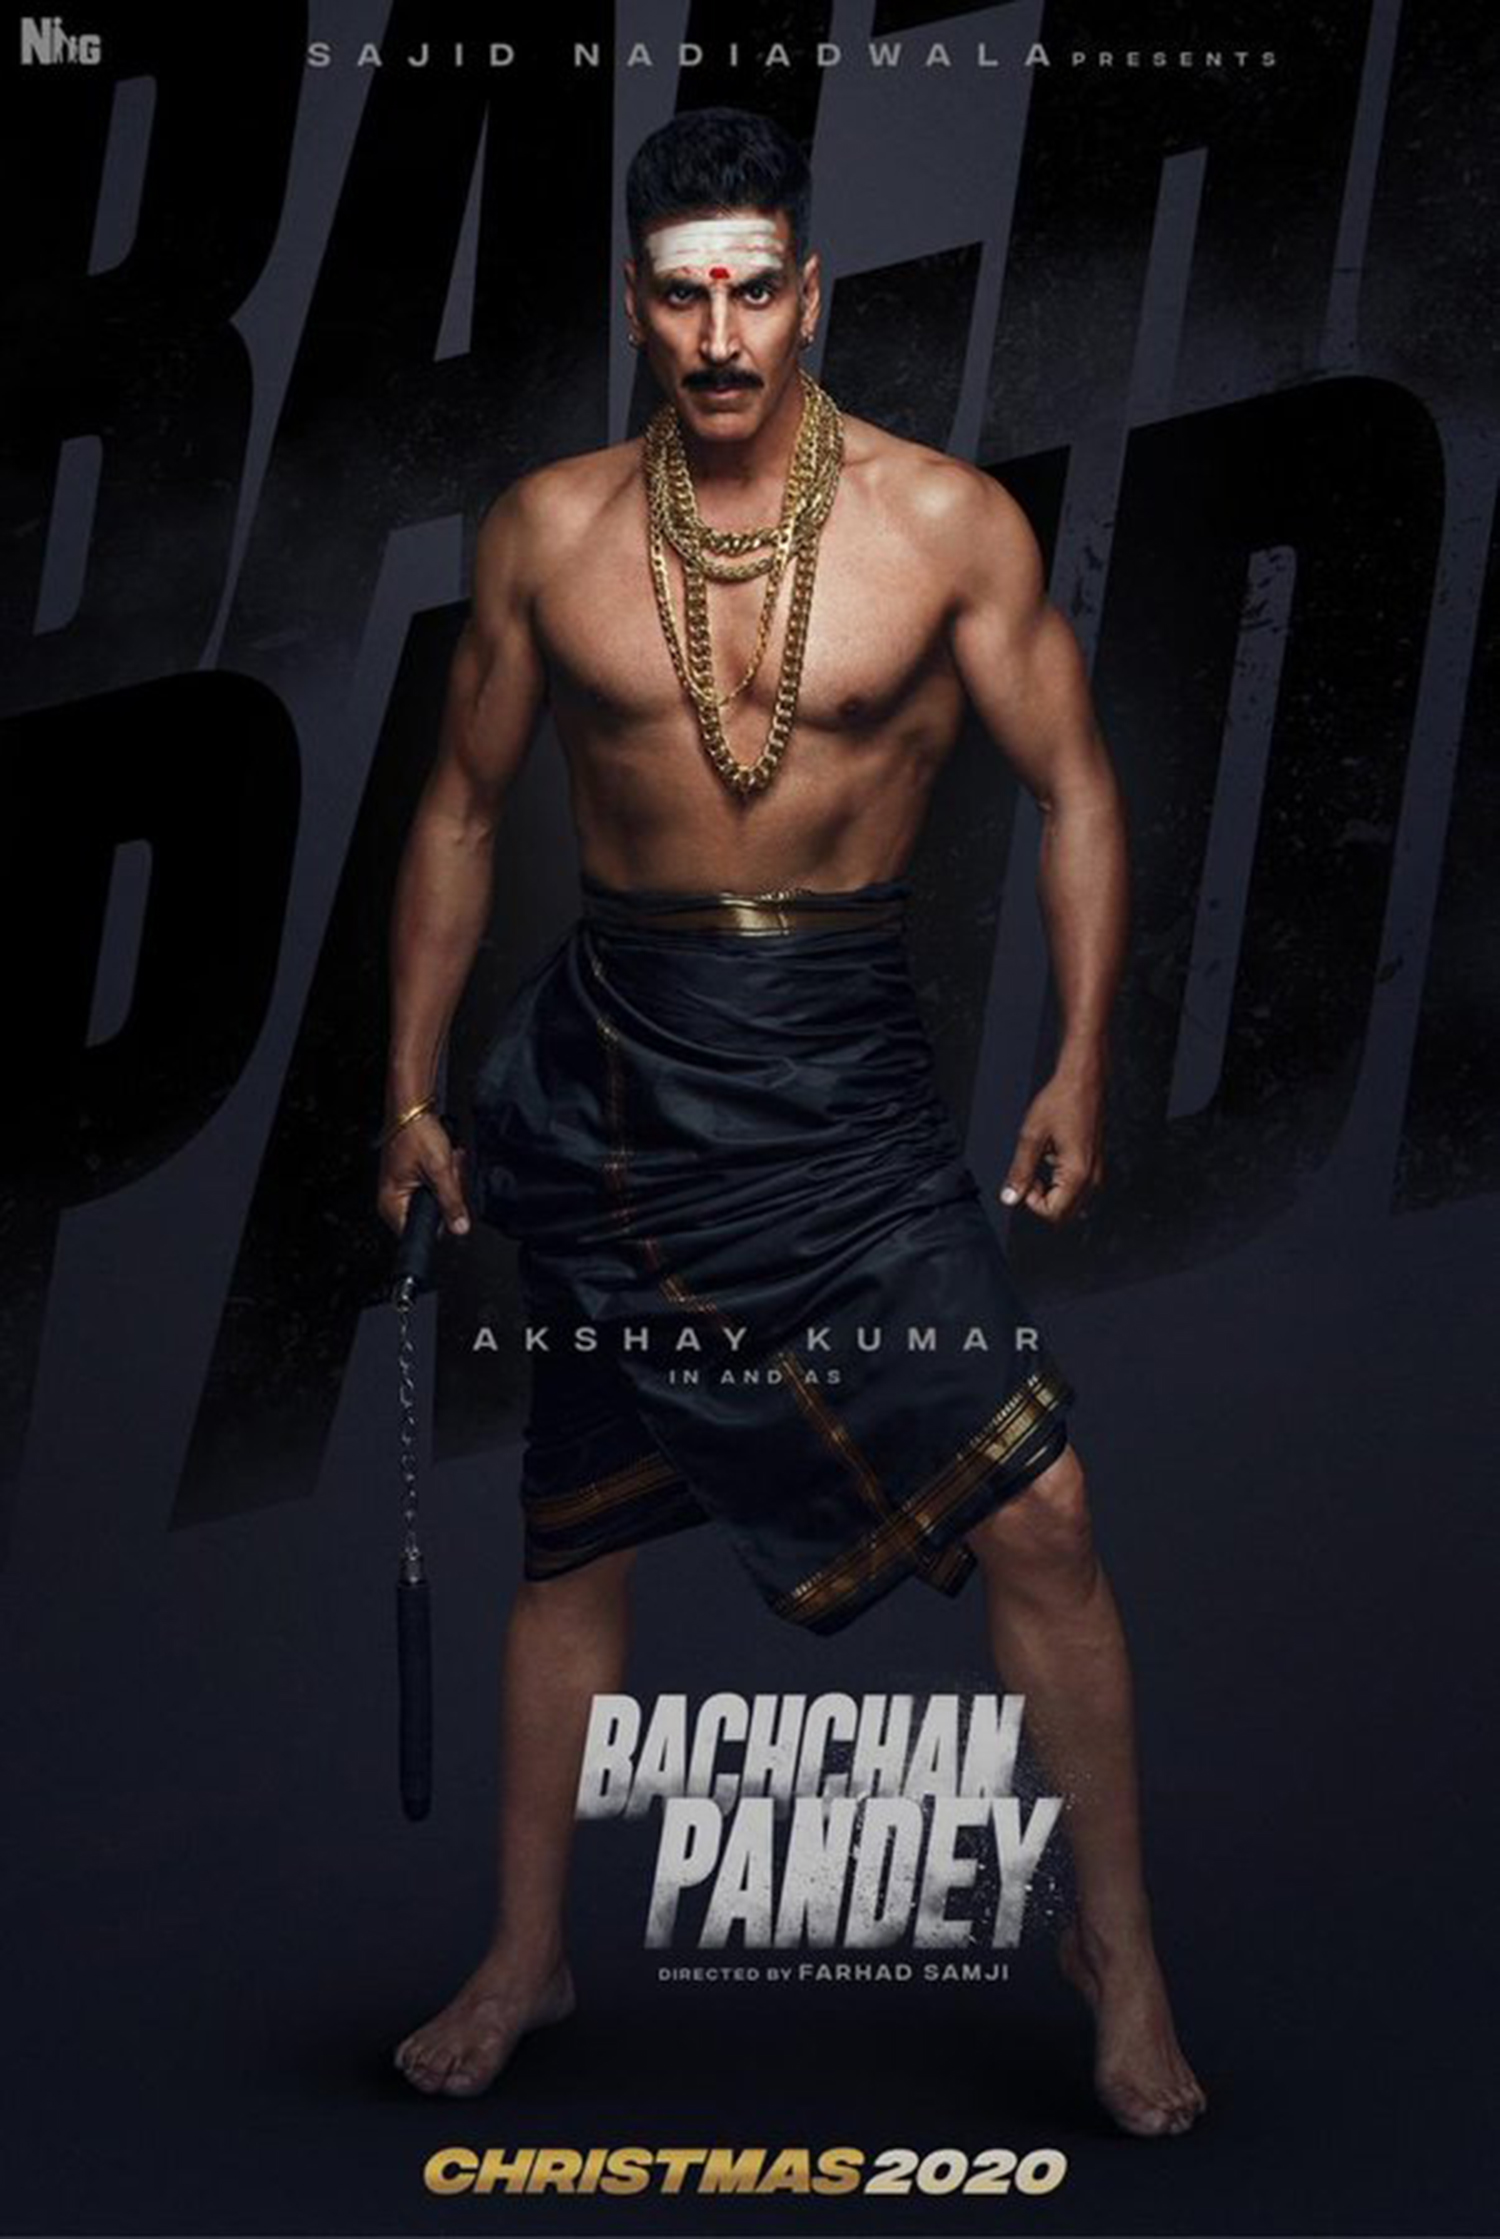 Bachchan Pandey,Bachchan Pandey Akshay Kumar,akshay kumar new film,Bachchan Pandey first look poster,akshay kumar Bachchan Pandey upcoming film,Bachchan Pandey upcoming film,akshay kumar's upcoming film,akshay kumar new movie